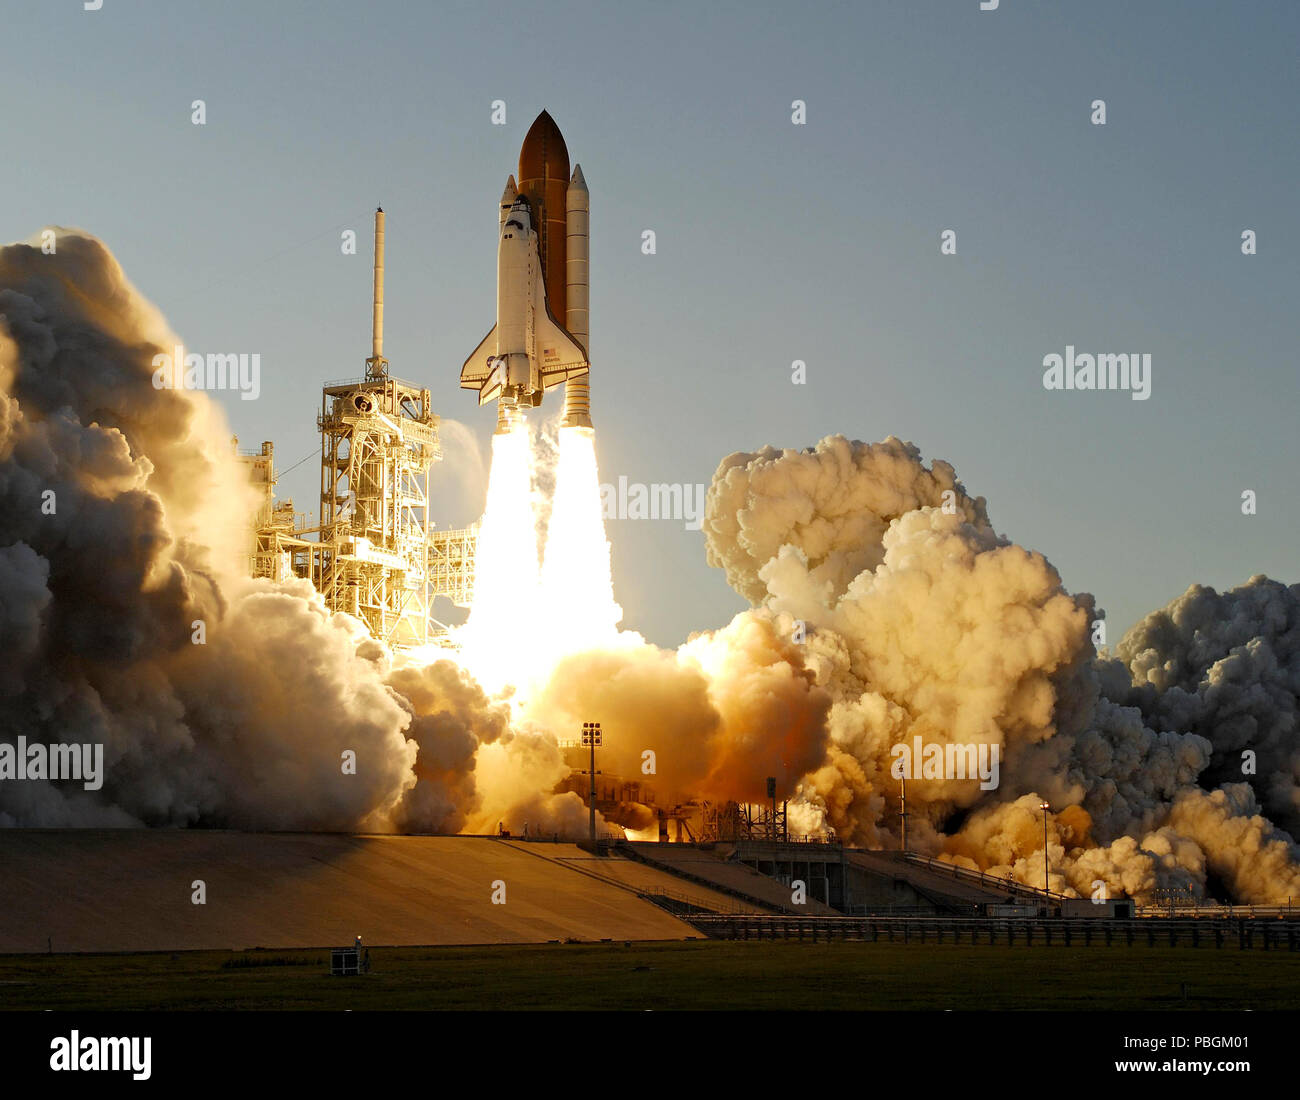 Space Shuttle Atlantis' STS-117 mission launches from the Kennedy Space Center. - Stock Image